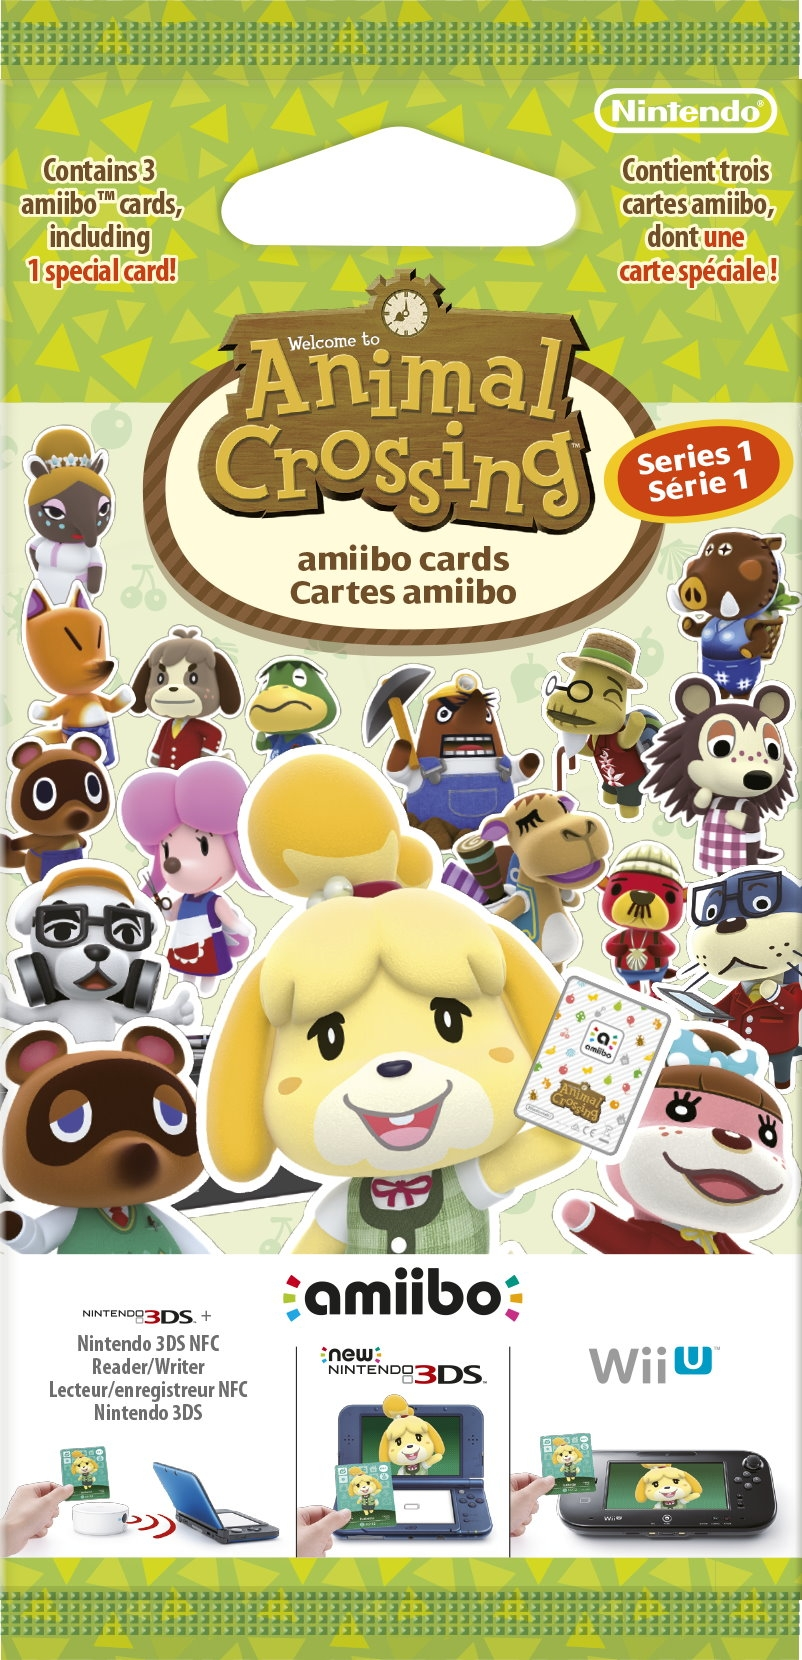 European Animal Crossing Amiibo card packs will contain half as many cards as American packs